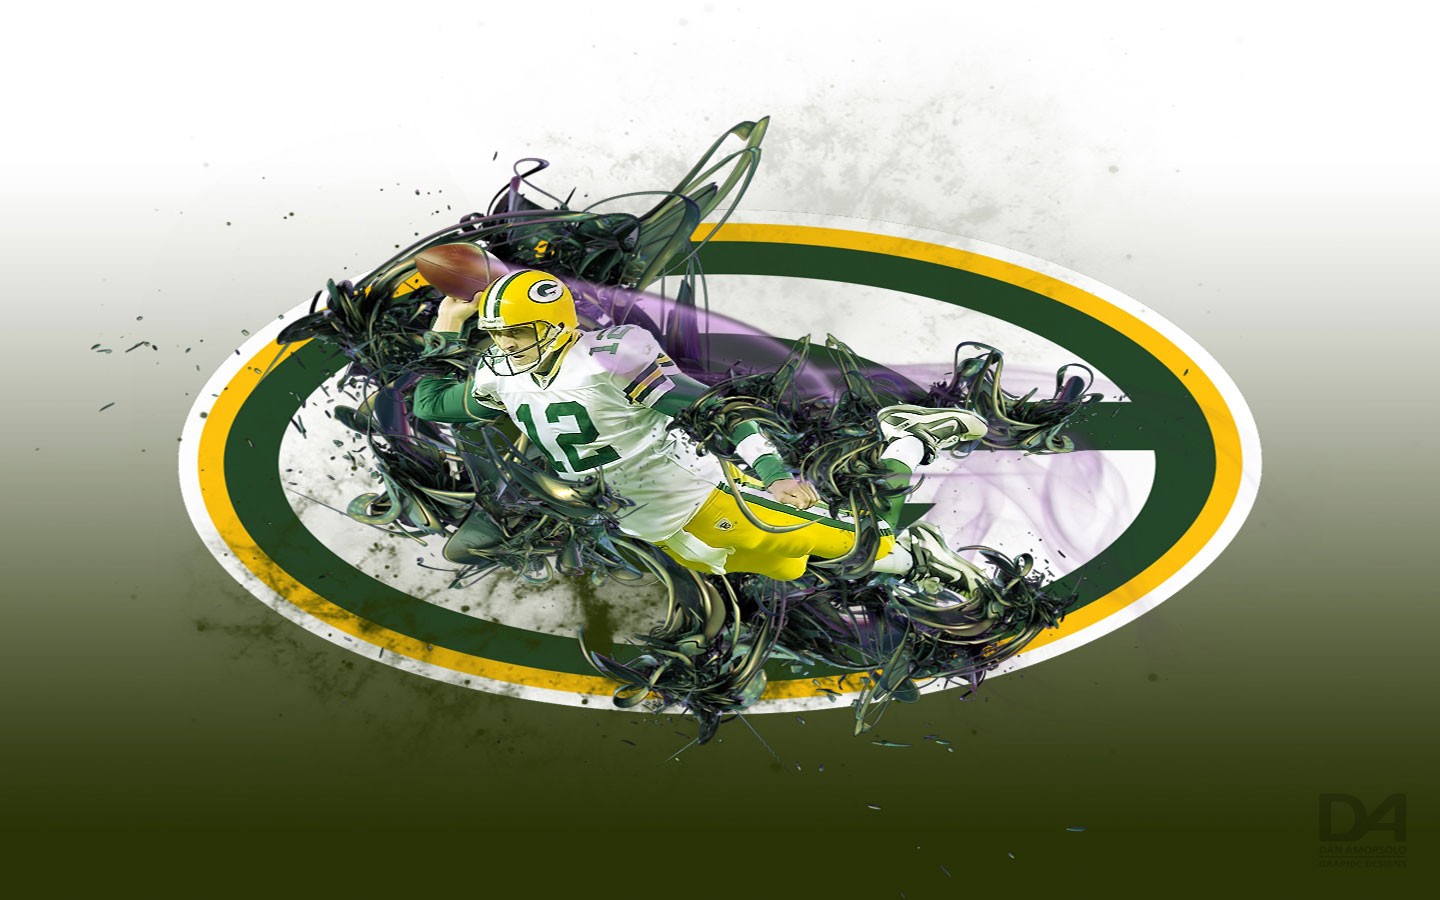 Green bay packers wallpaper and background image 1440x900 id513279 sports green bay packers nfl football wallpaper voltagebd Image collections